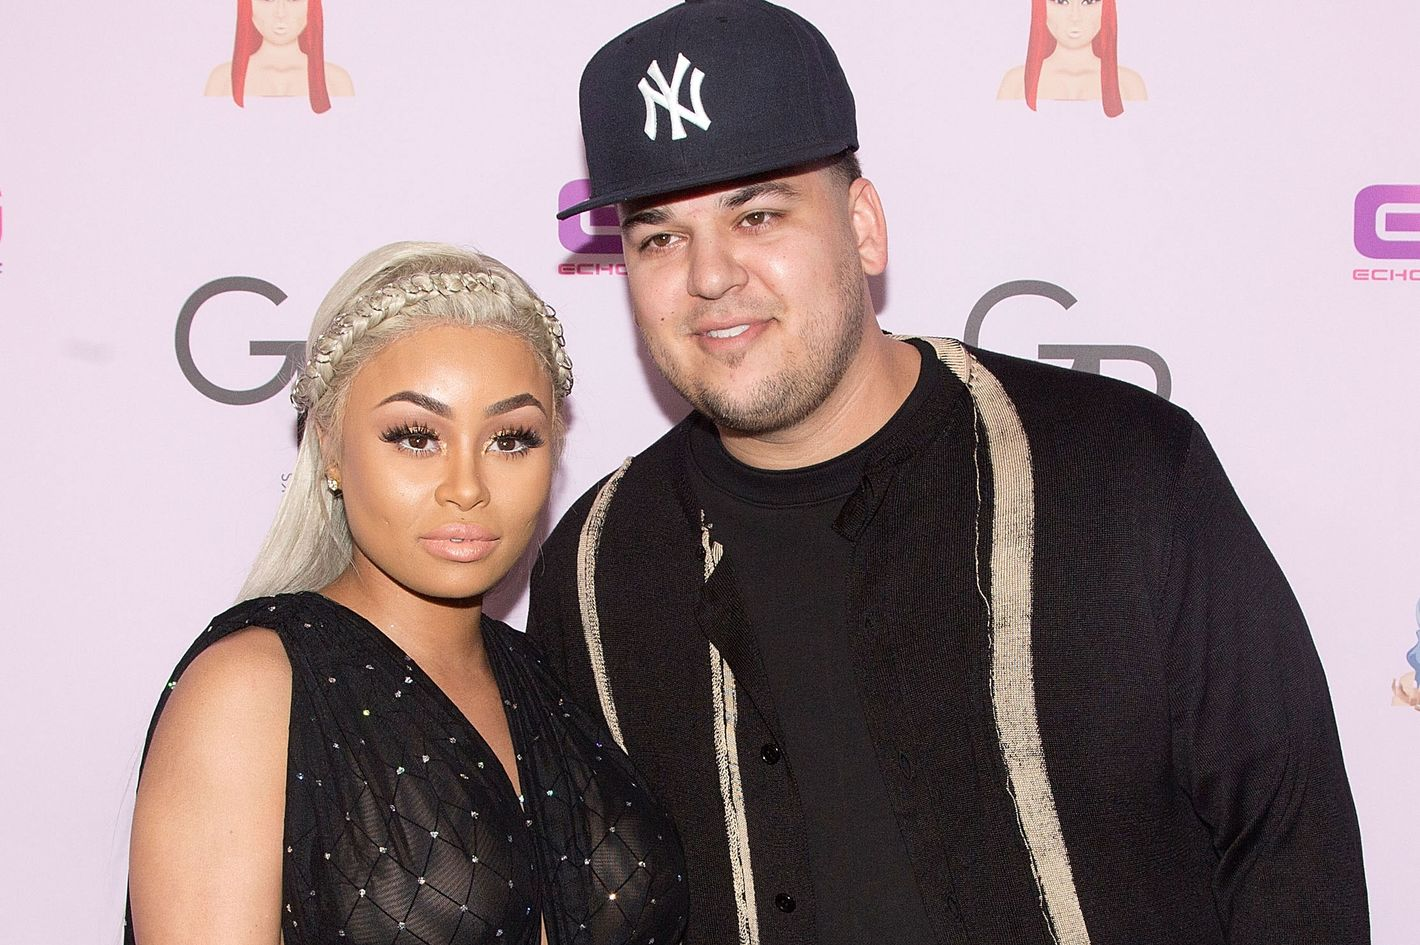 blac chyna tweeted out rob kardashian's phone number